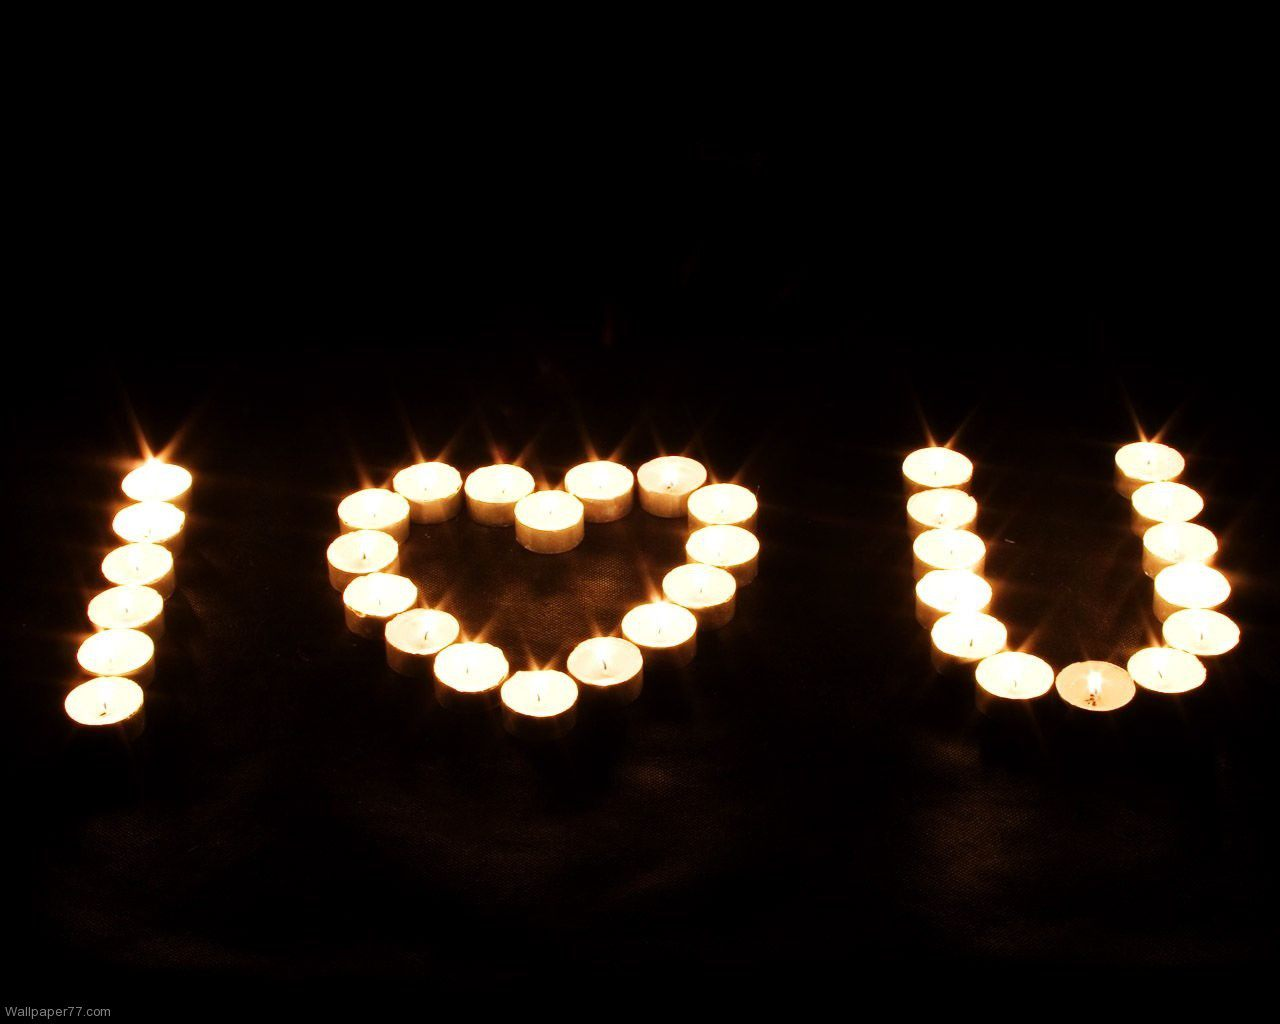 http://3.bp.blogspot.com/-KXIRDl6OEgk/T5DGiVT4xsI/AAAAAAAABtE/vvZDnJjsu4o/s1600/Candles-of-Love-love-wallpapers-heart-wallpapers-valentine-wallpapers--1280x1024.jpg